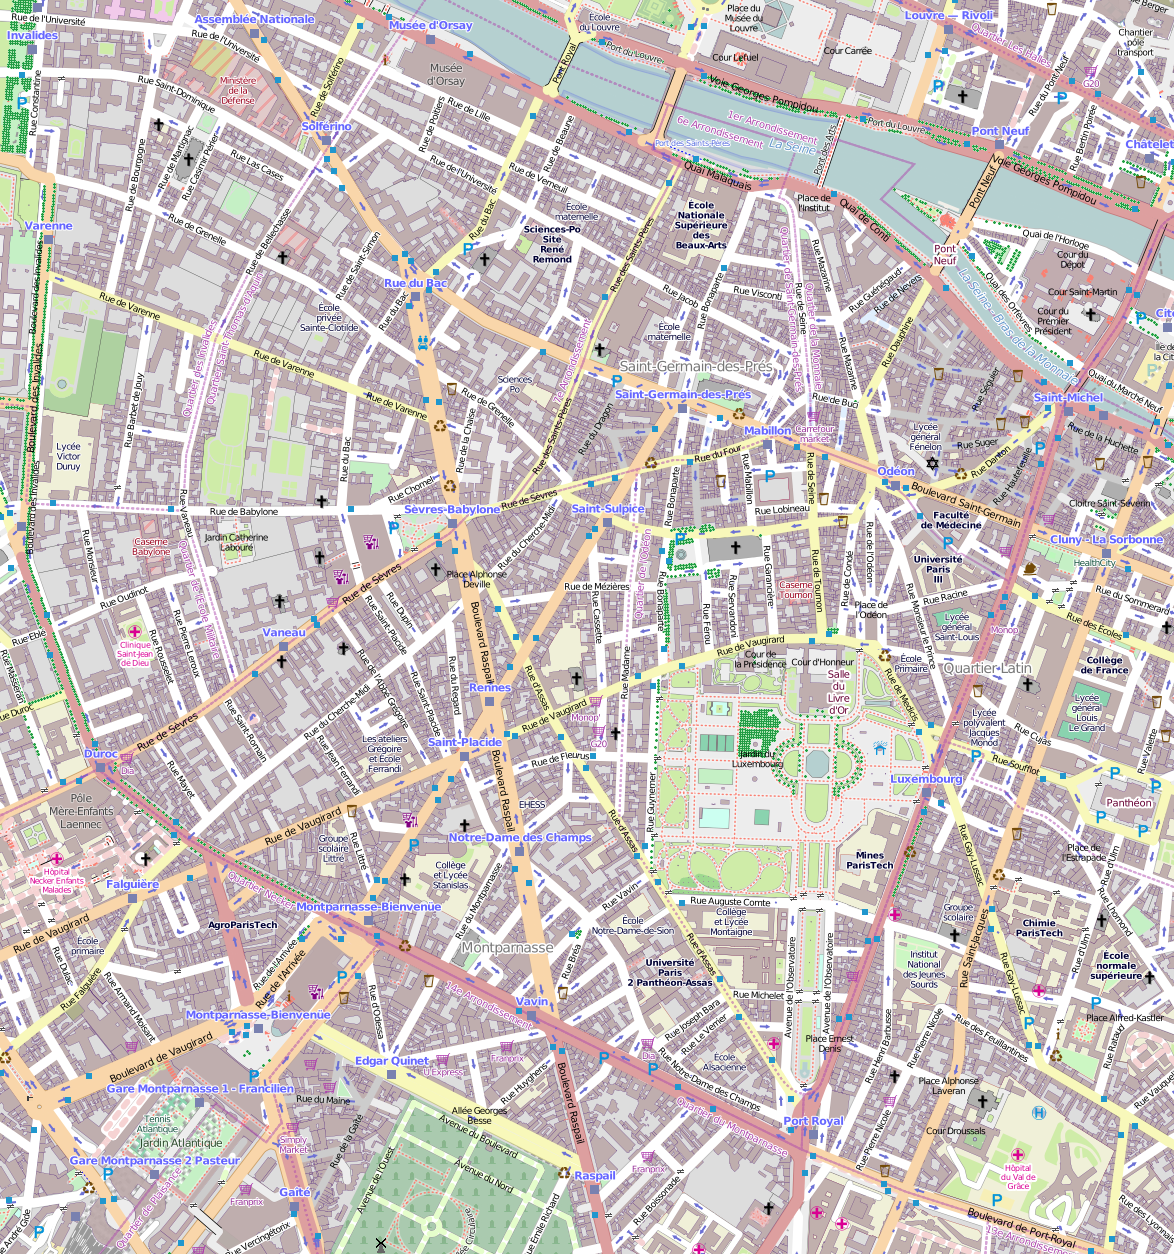 Map Of Paris France 6th Arrondissement.File 6e Arrondissement Paris France Open Street Map Png